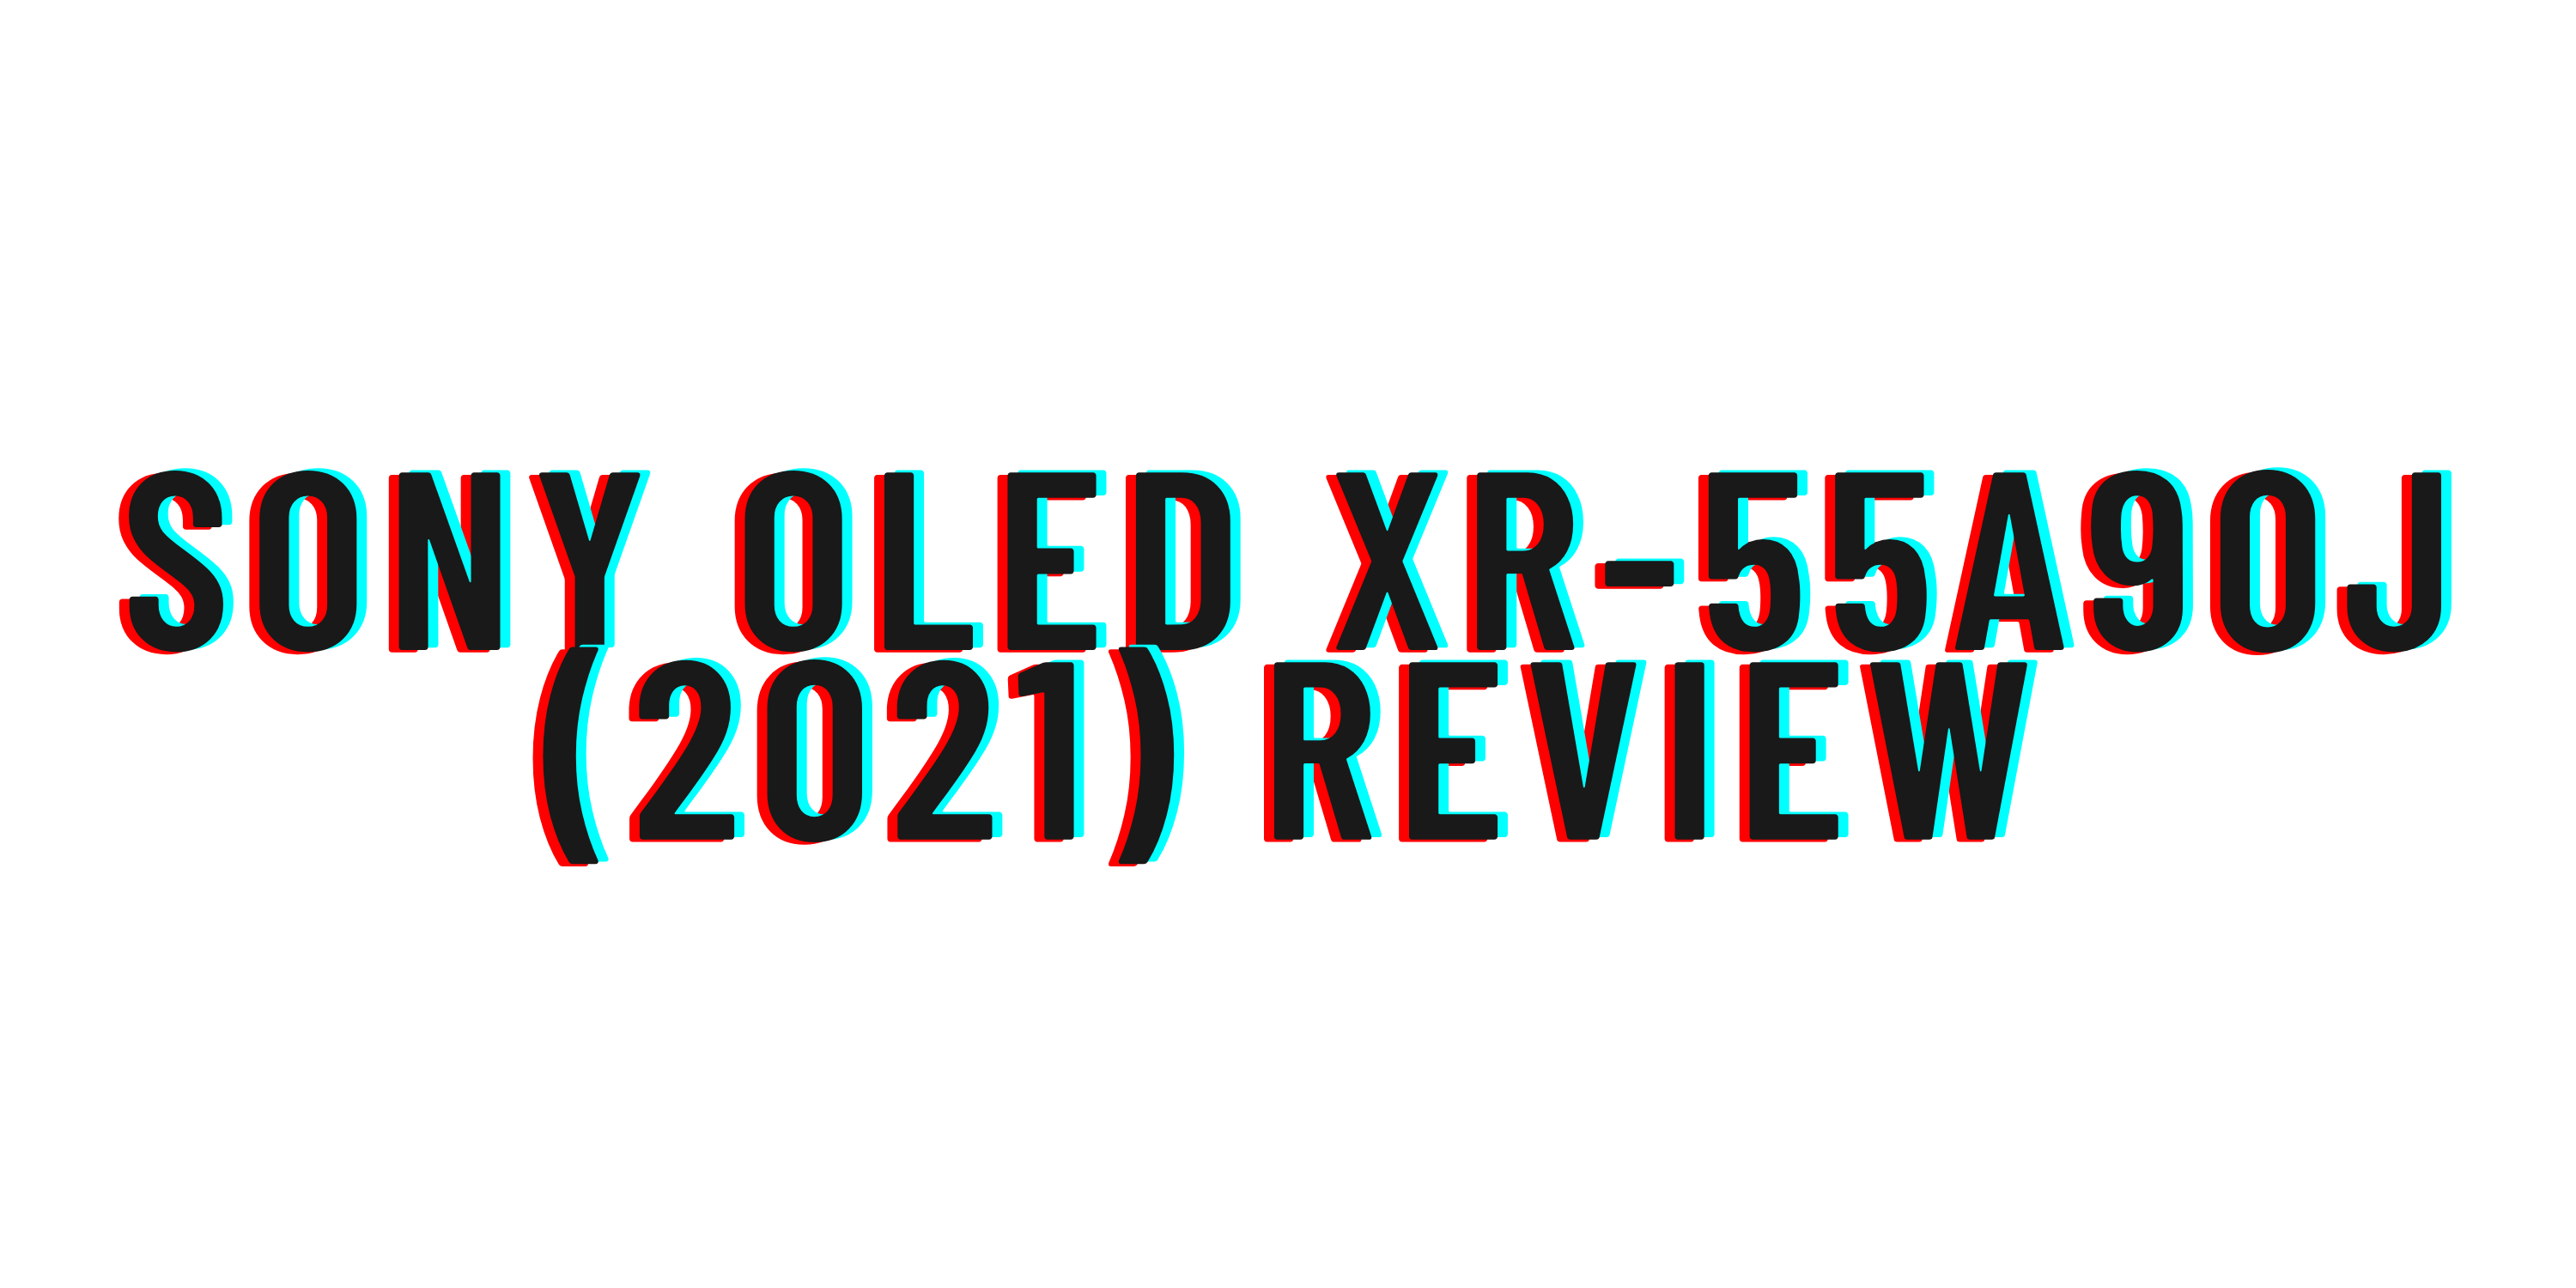 Sony OLED XR-55A90J (2021) review